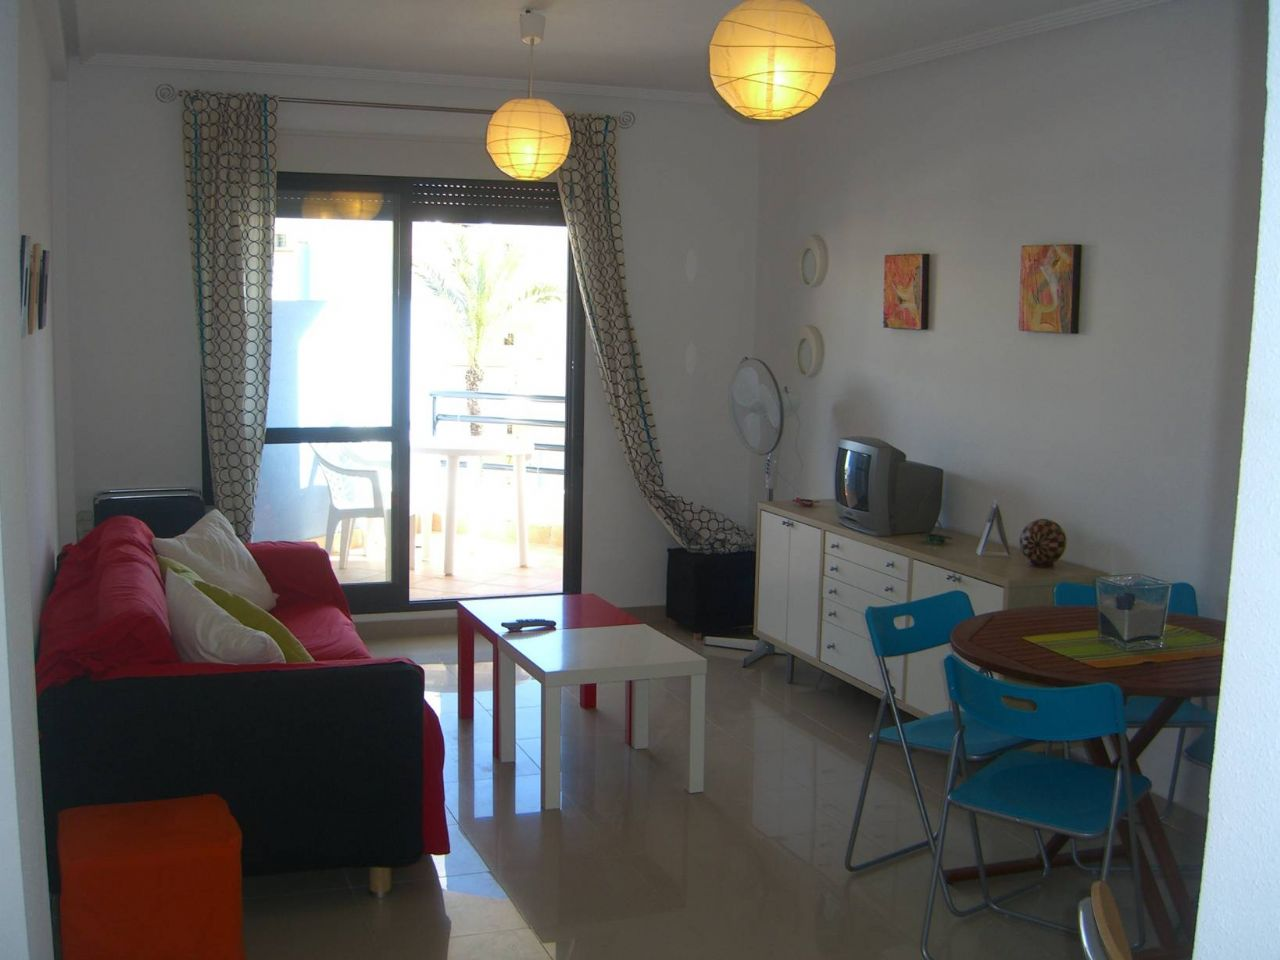 Propery For Sale in Dehesa de Campoamor, Spain image 7